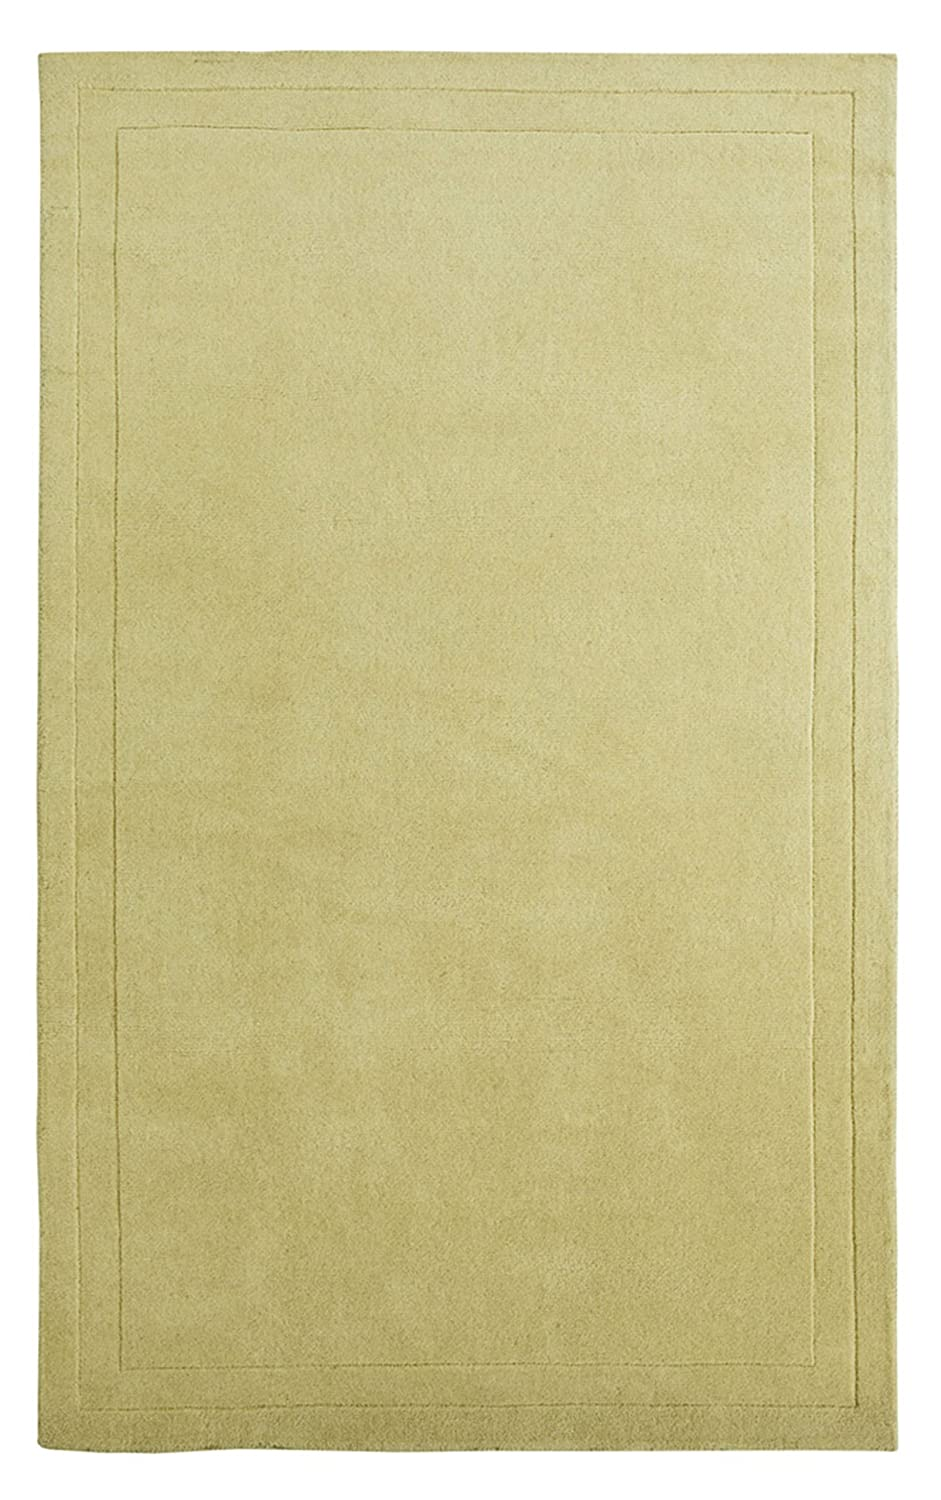 Off White CR6093 Jovi Home Carved Hand Made Rug 2-Foot by 8-Foot